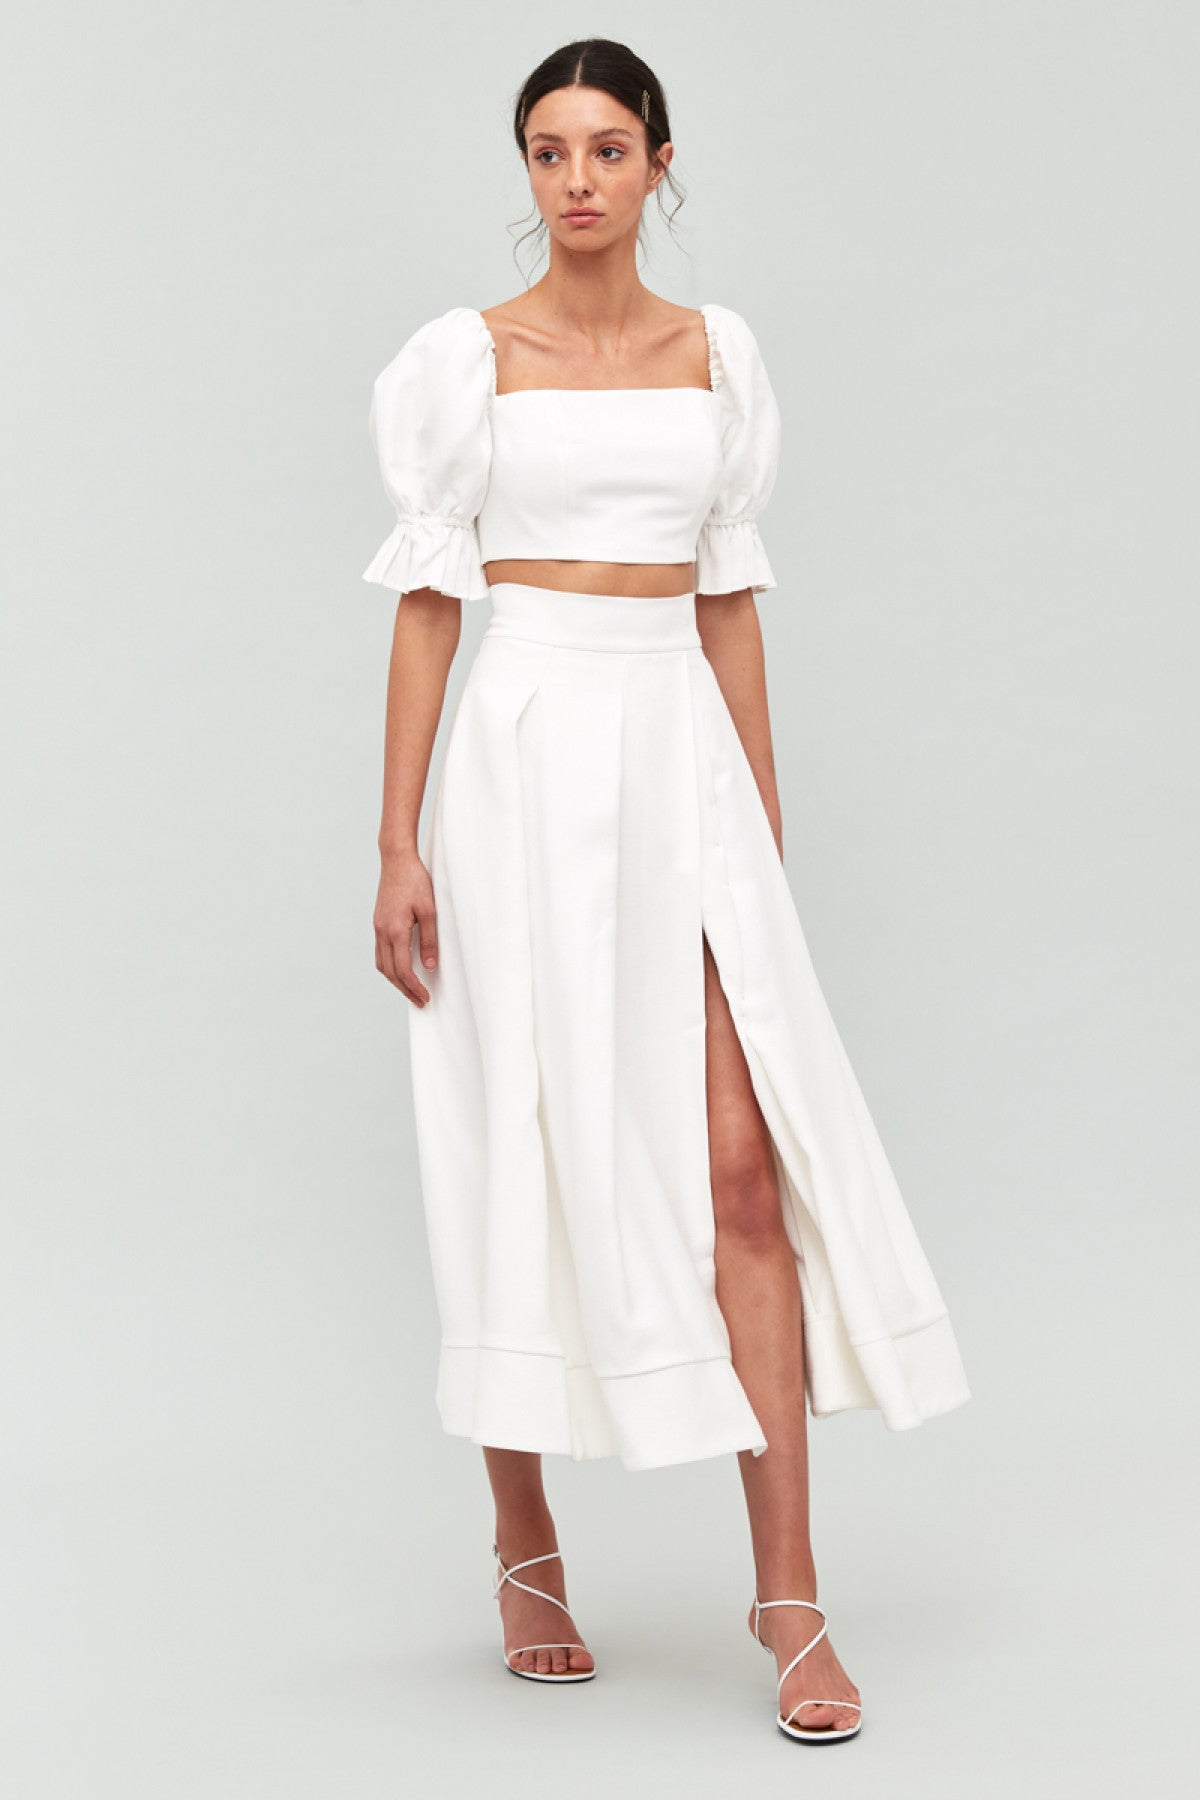 STILL FEEL SKIRT ivory